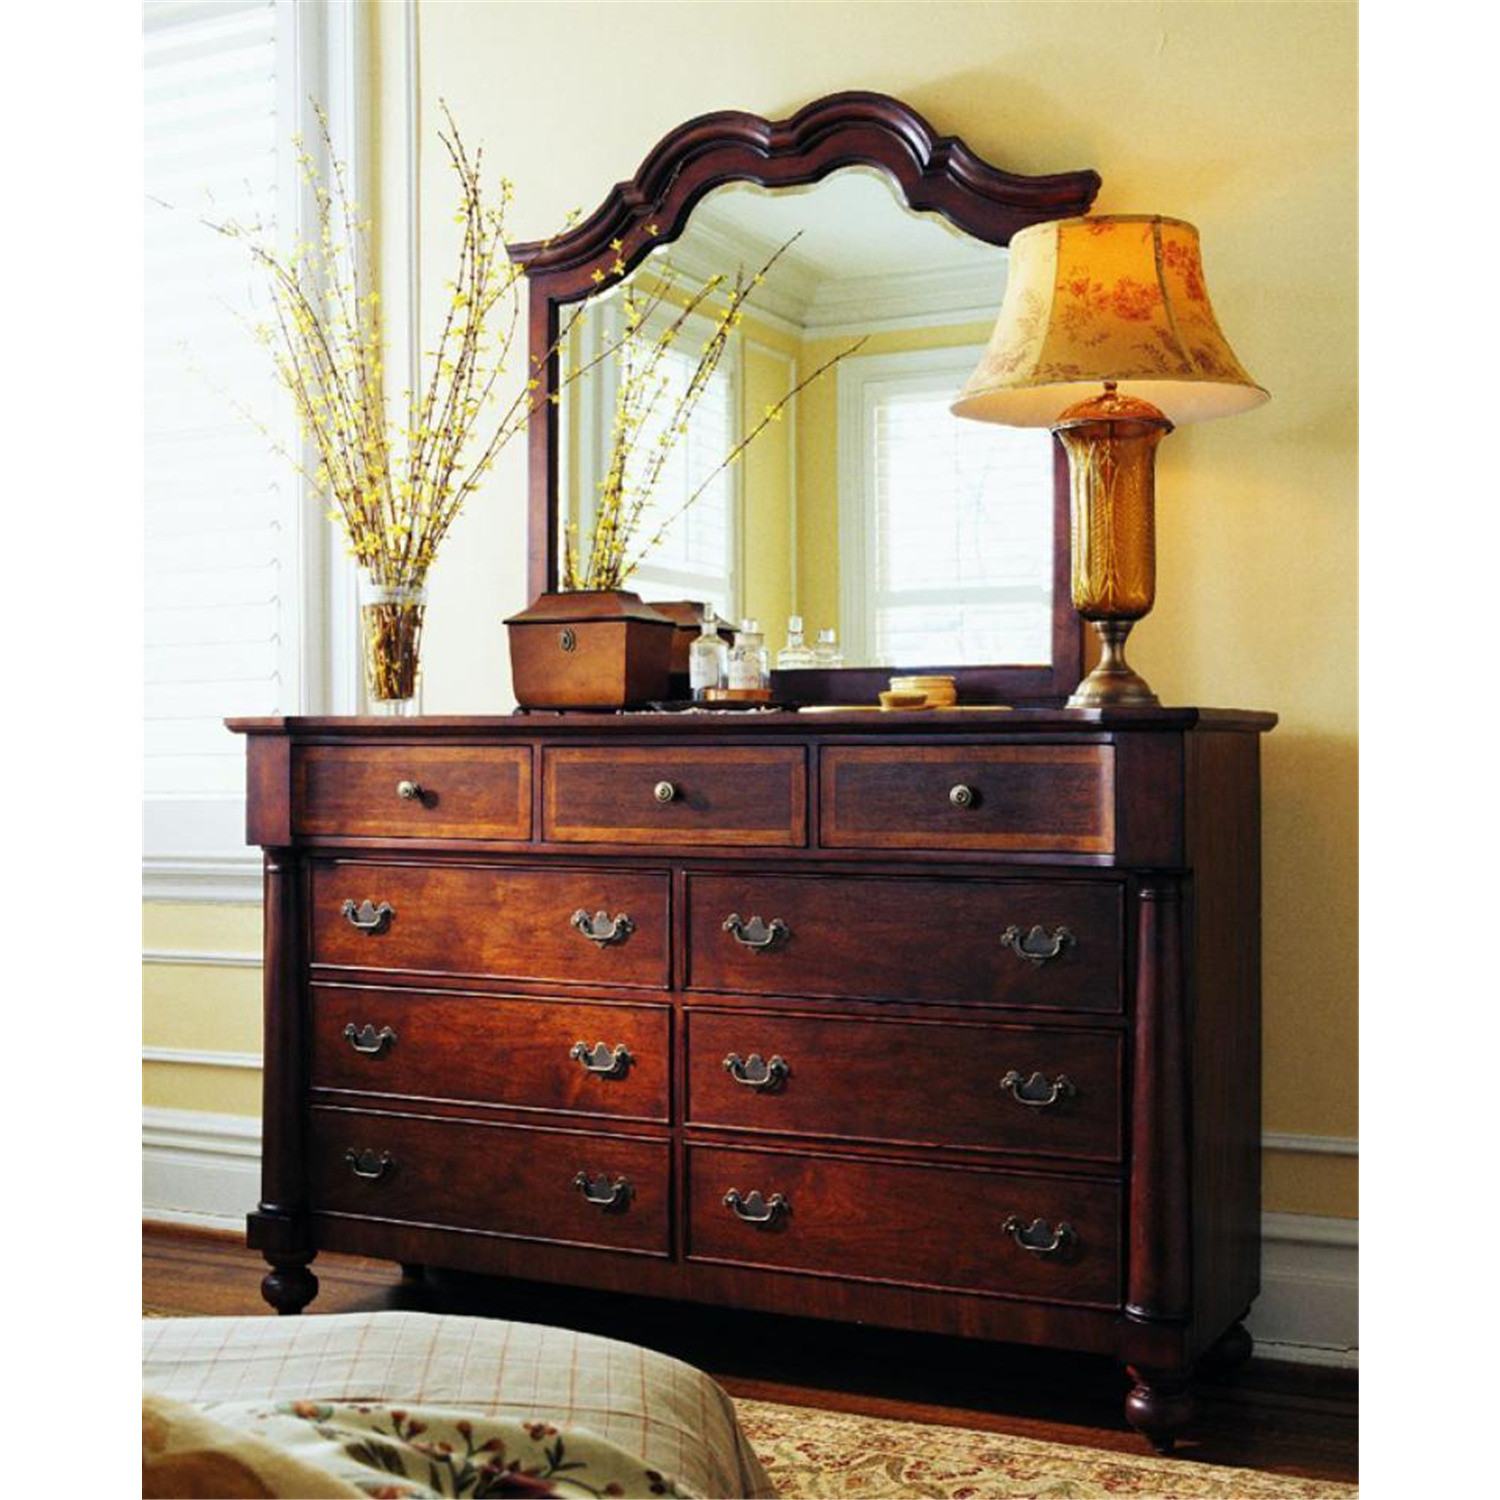 Lane California King Sleigh Bed Set With Dresser Mirror And Nightstand By Oj Commerce 708